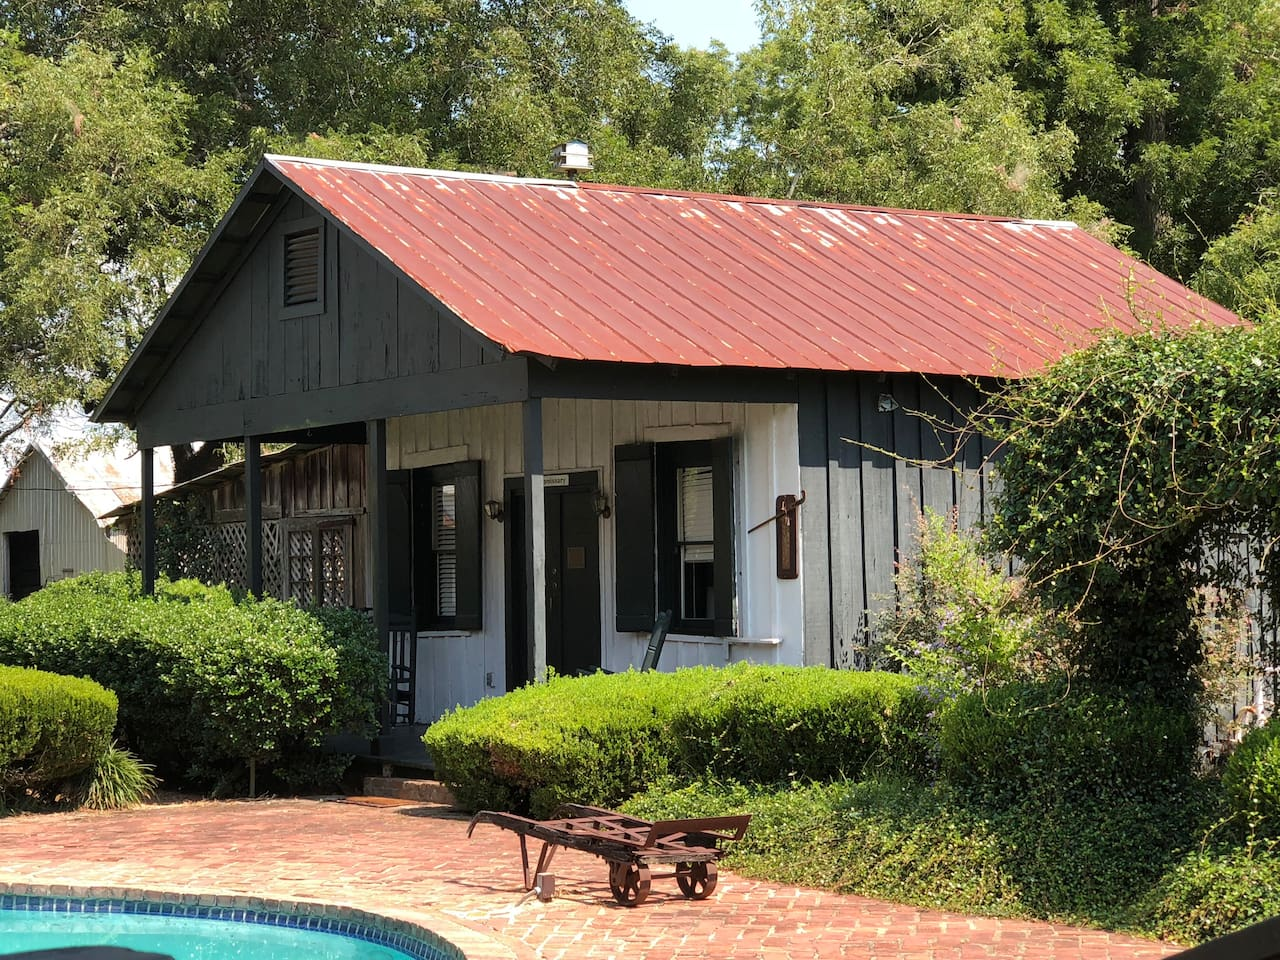 The Commissary is a quaint little cottage, listed on the National Historic Register.  The neutral palette is accented with rich reds. This cottage has an open floor plan with a king size bed, twin size sofa sleeper and a kitchen area.